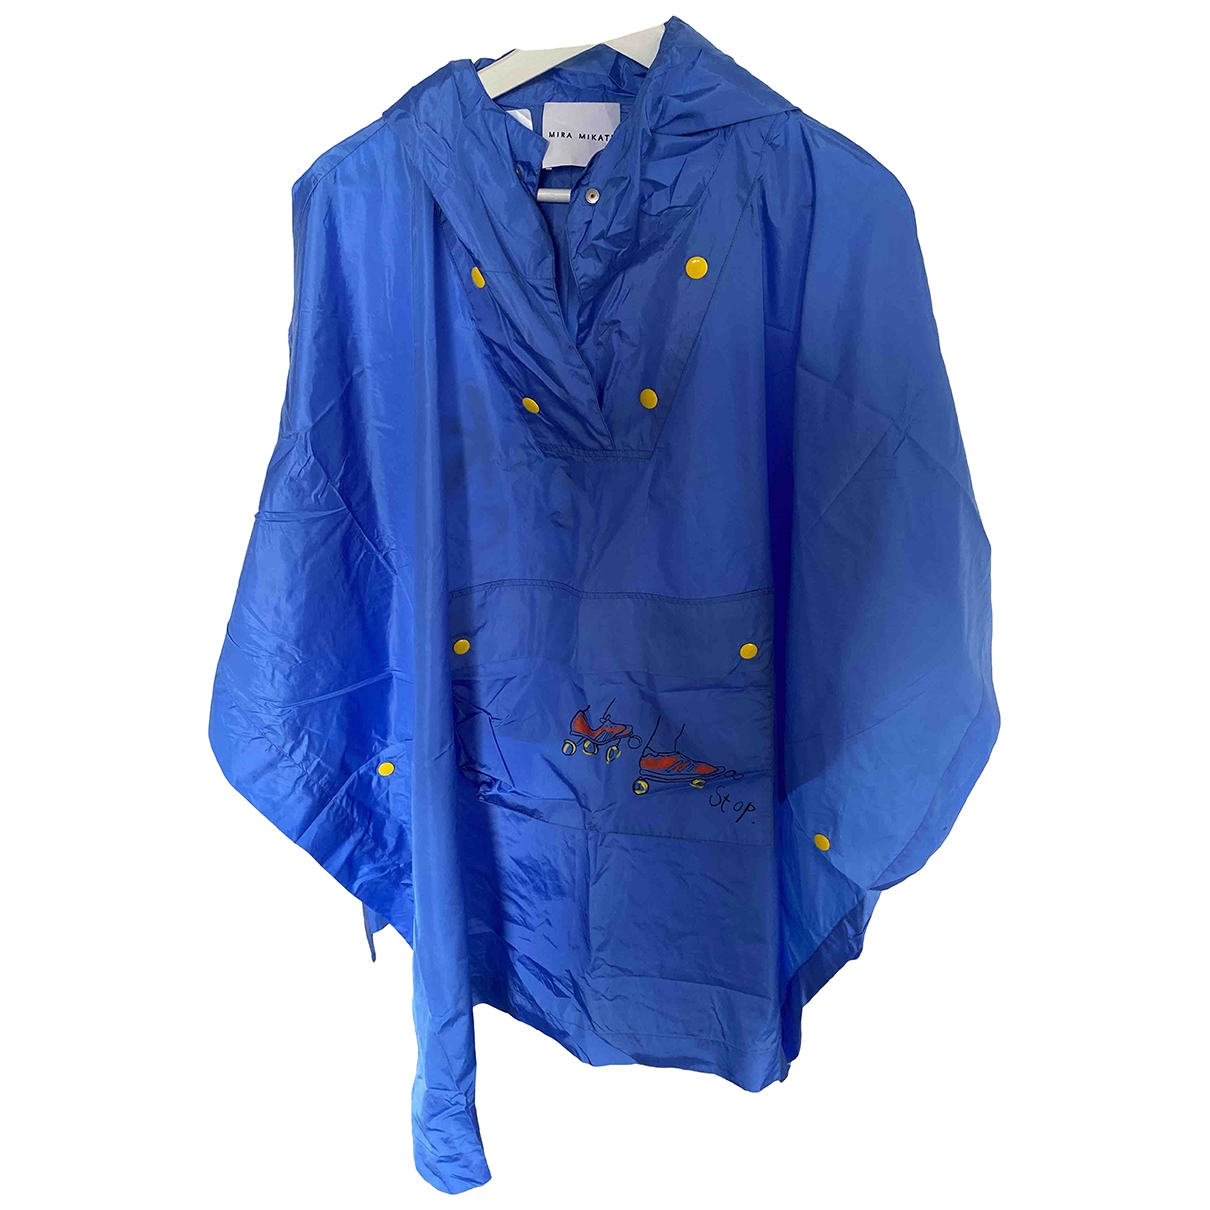 Mira Mikati \N Blue coat for Women One Size FR